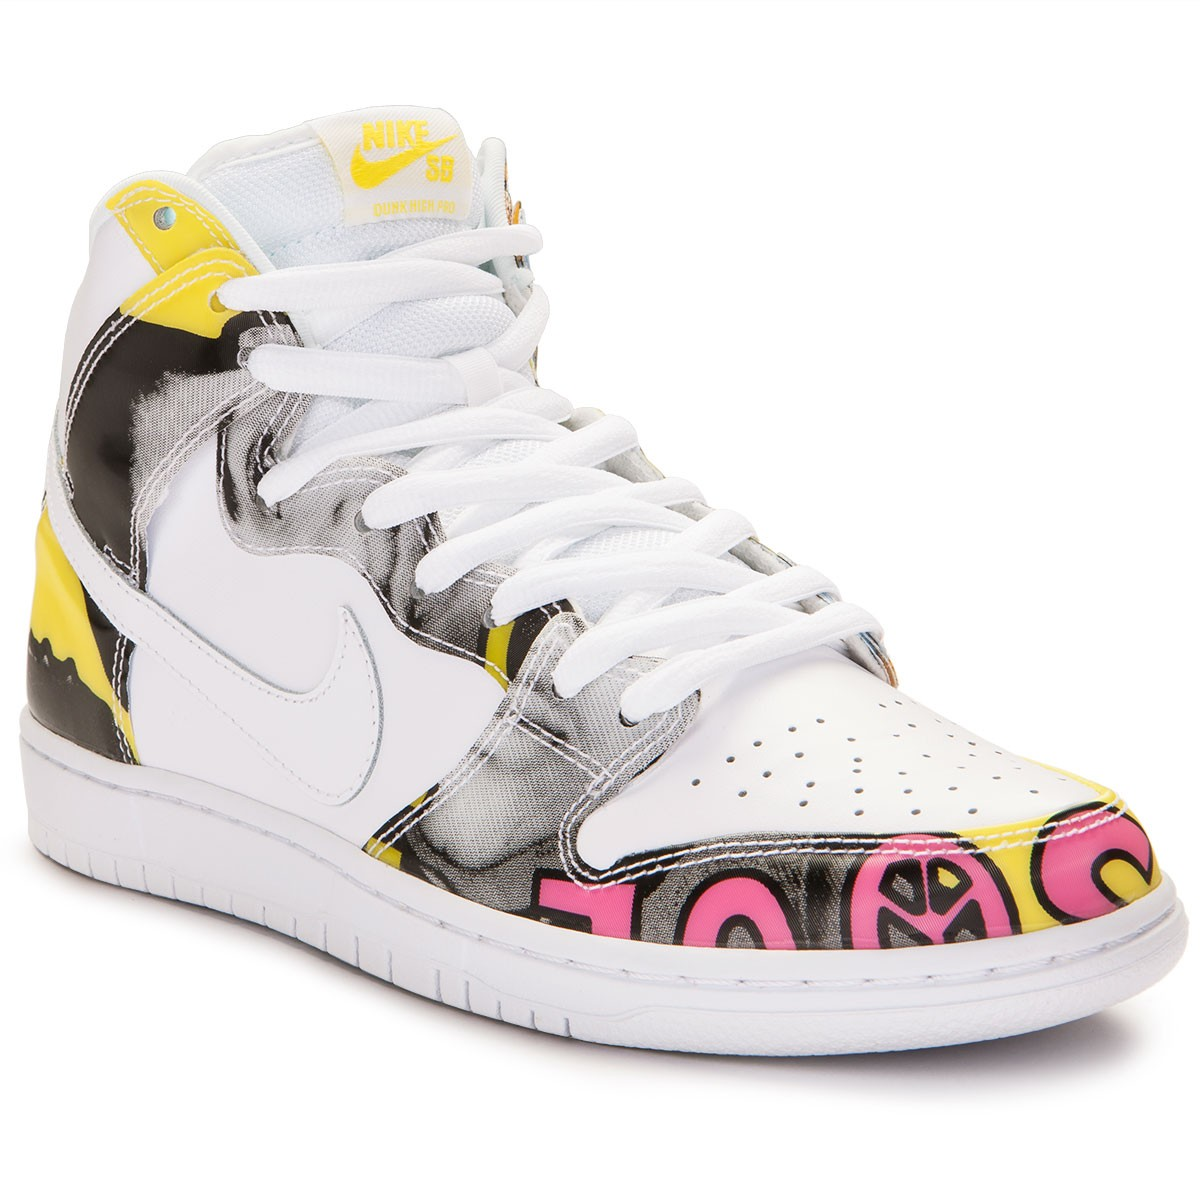 cheap for discount 53558 c3296 Nike SB Dunk High Premium De La Soul Shoes - White Firefly - 15.0